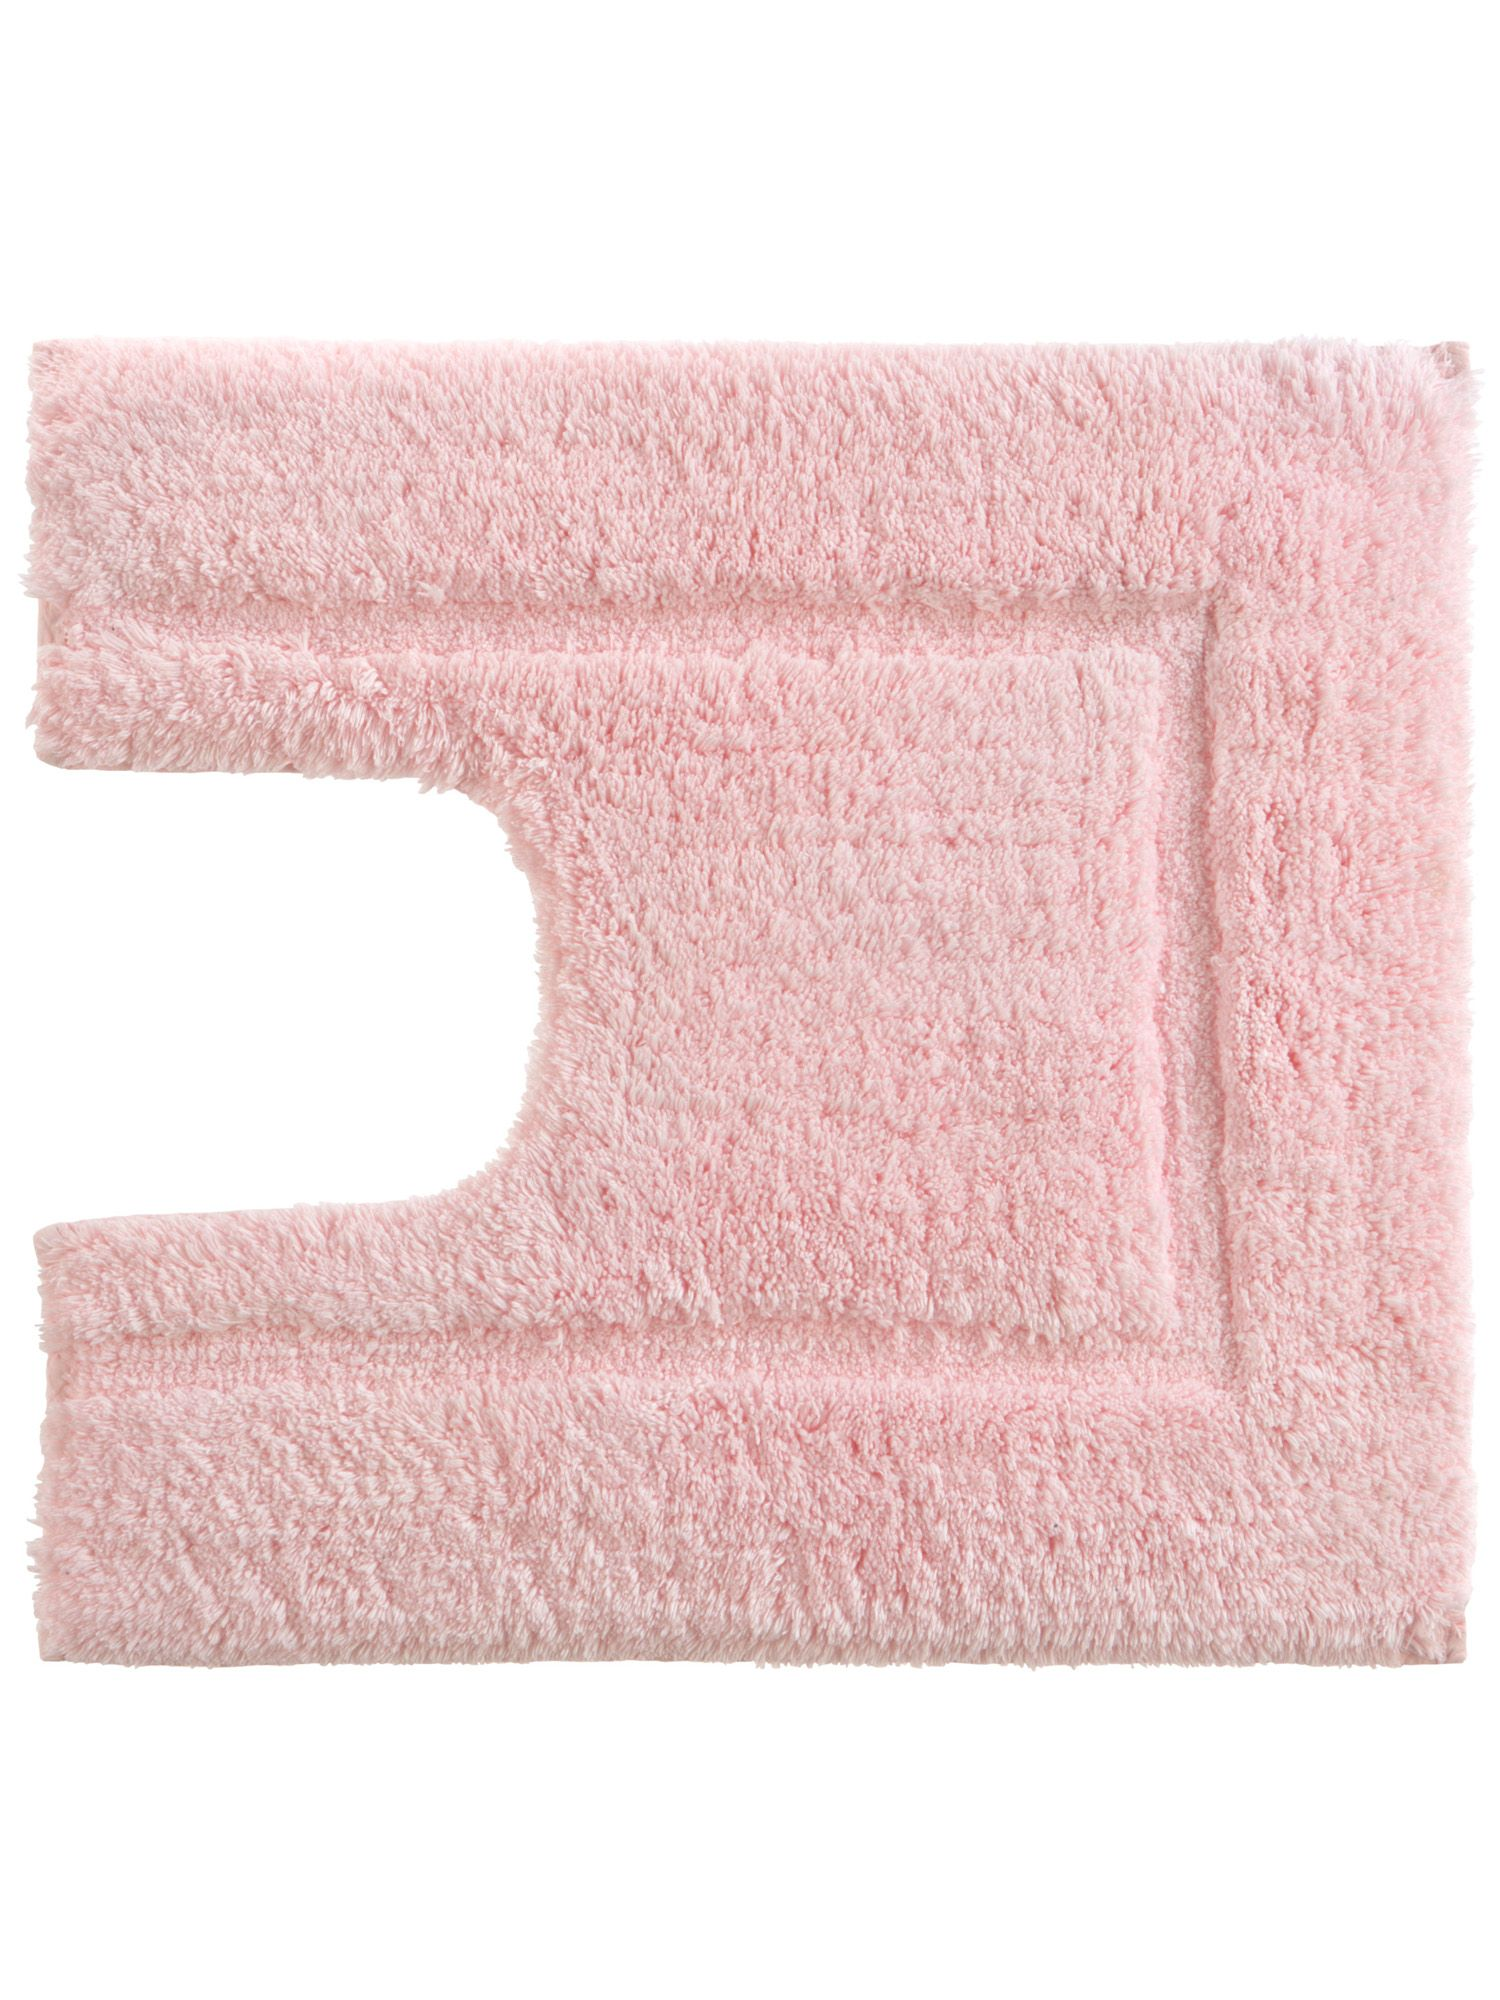 Tufted ped mat 5x55 pink by Christy